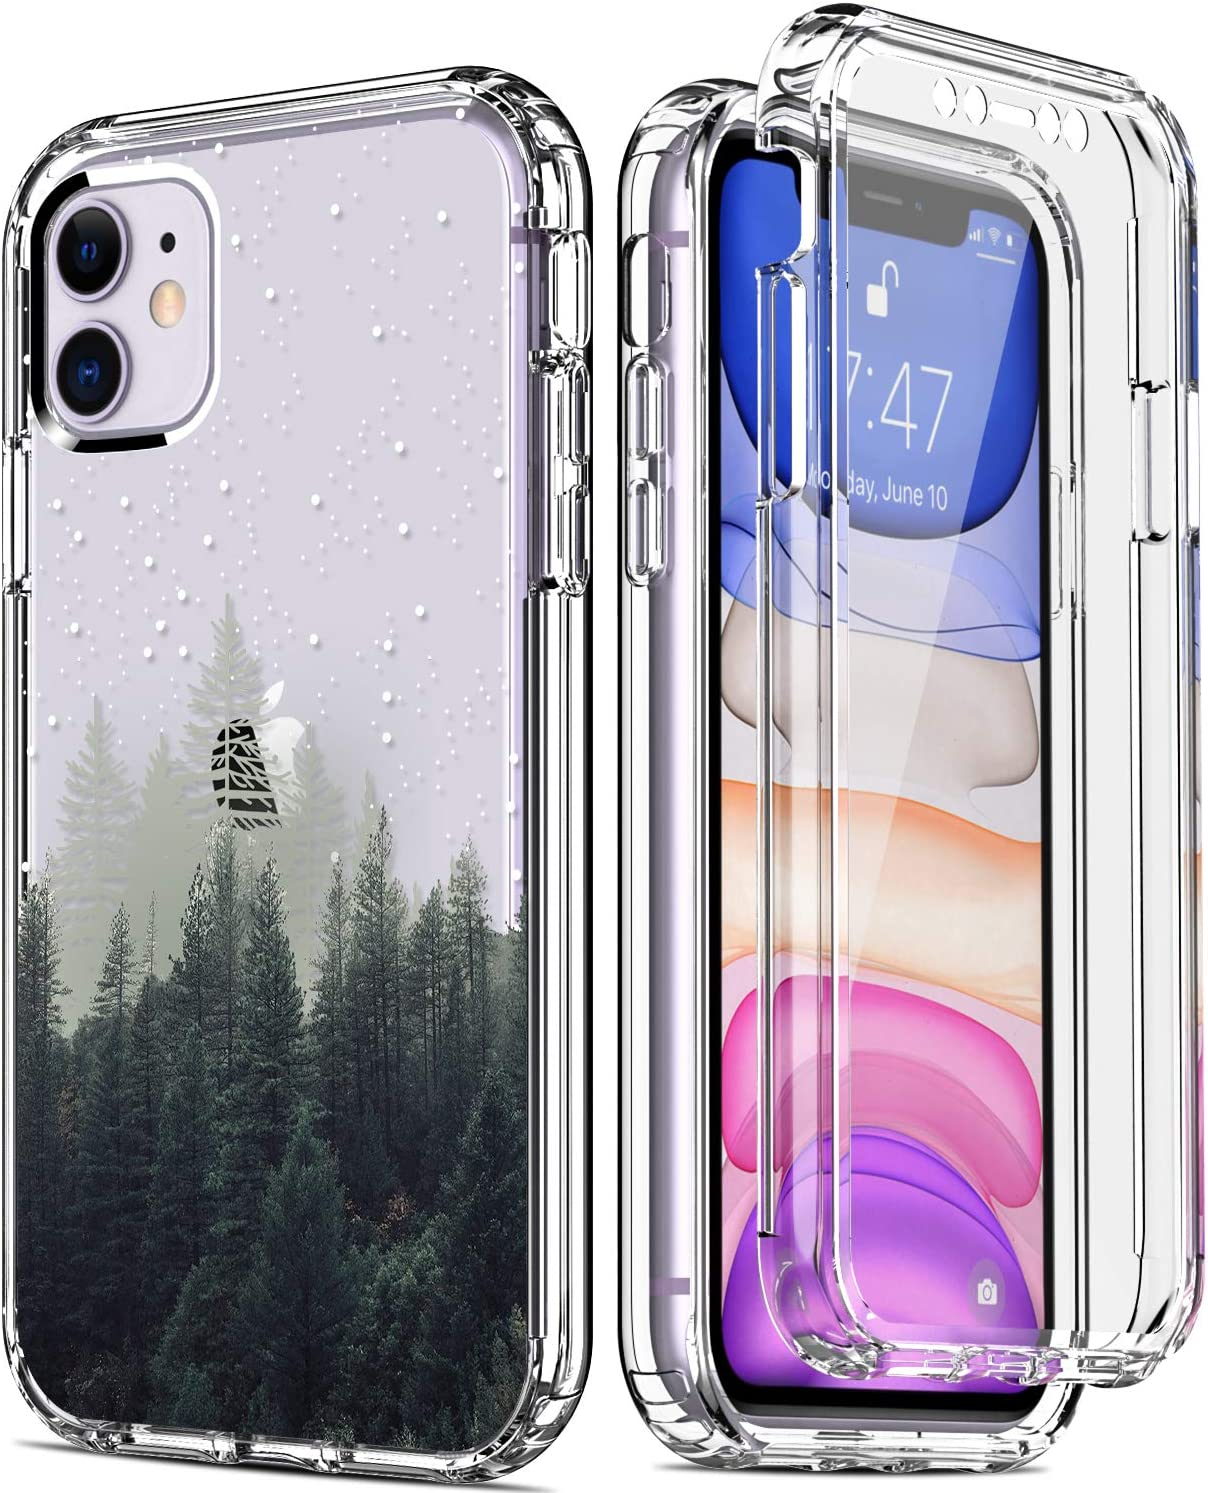 """IKAZZ iPhone 11 Case with Built-in Screen Protector,Clear TPU Bumper Cover with Fashionable Floral Designs for Girls Women,Protective Phone Case for Apple iPhone 11 6.1"""" Forest in The darknight"""